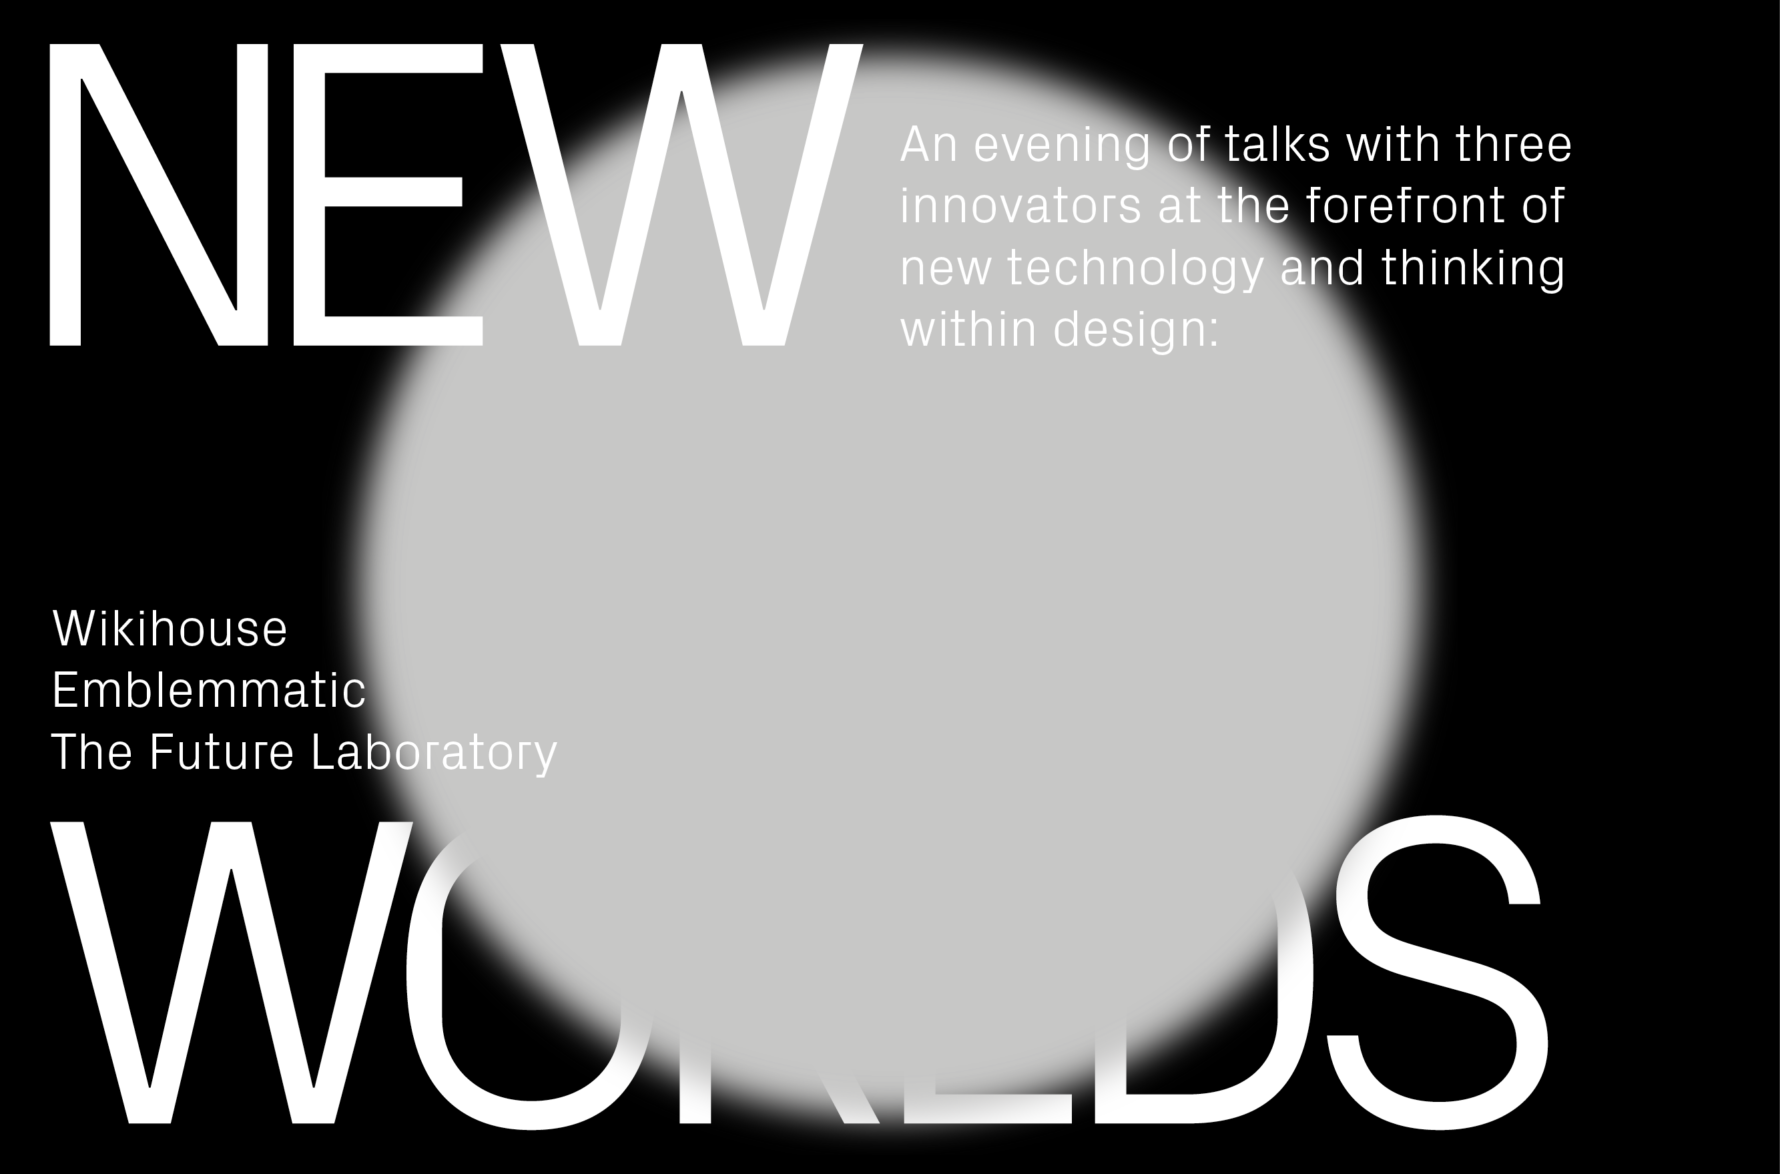 new-worlds-graphic-design-festival-scotland-1800x1200-1780x1174